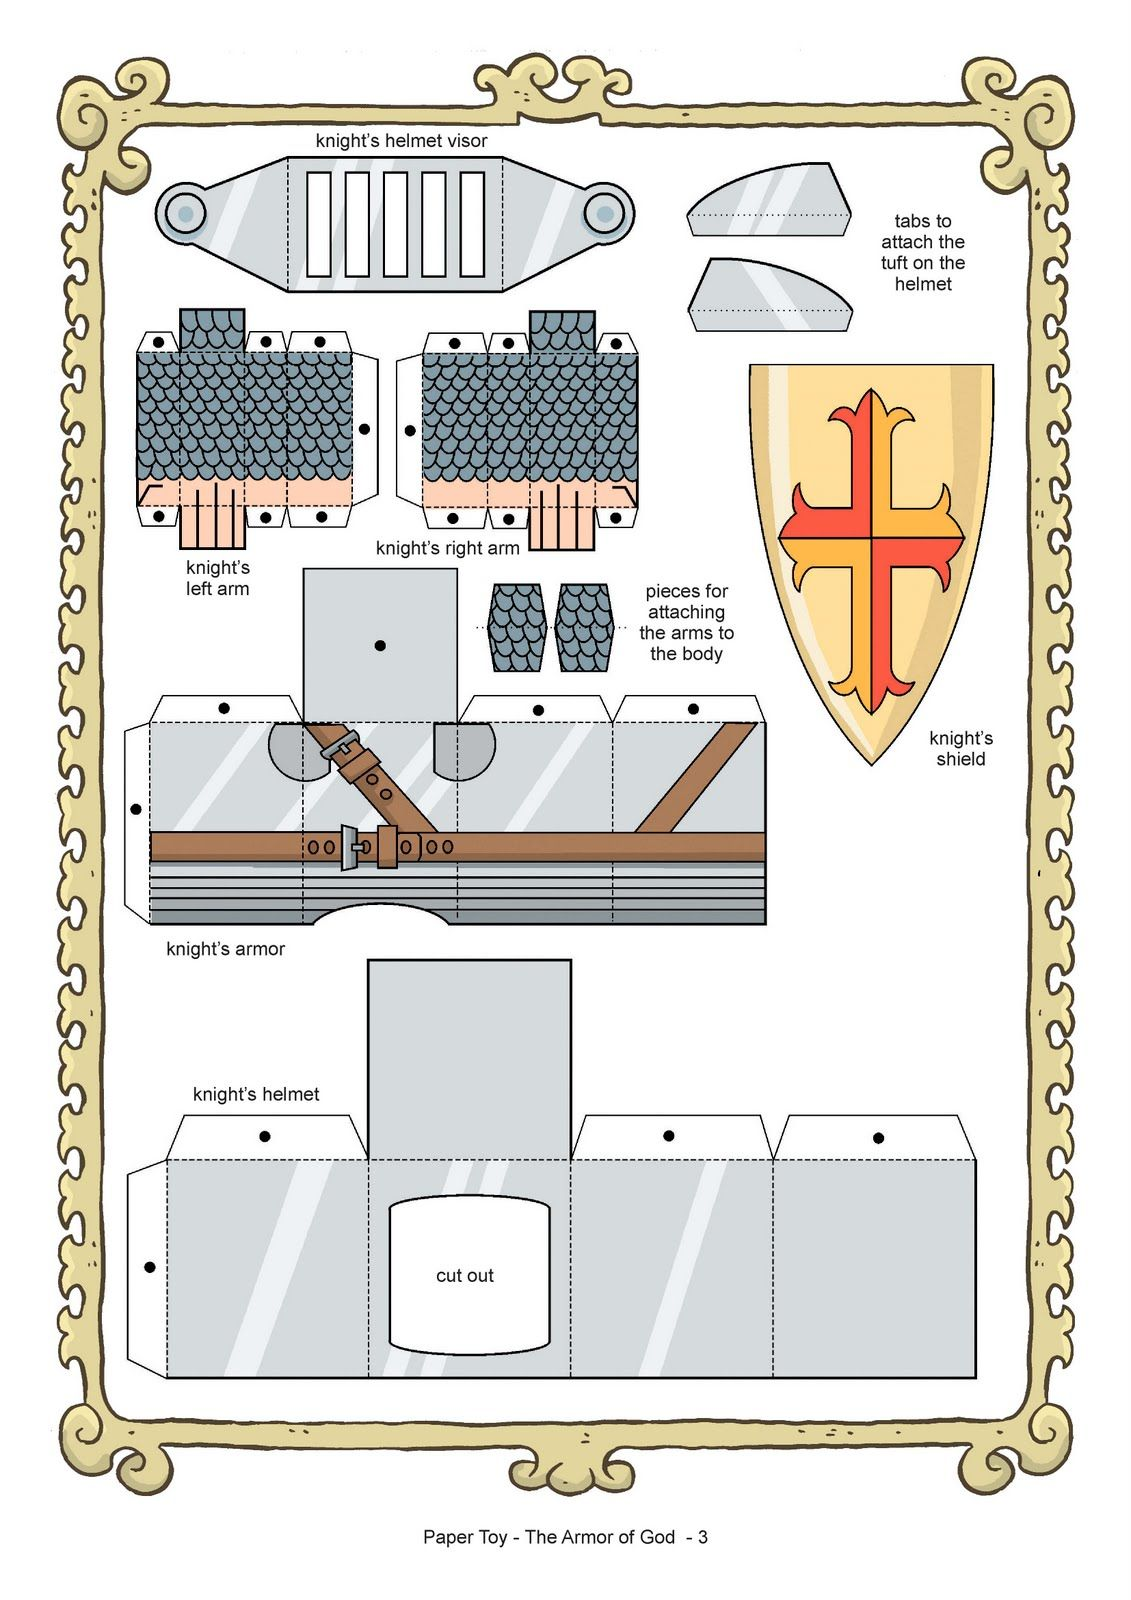 armor of god coloring pages | My Little House: Paper Toy: the Armor ...